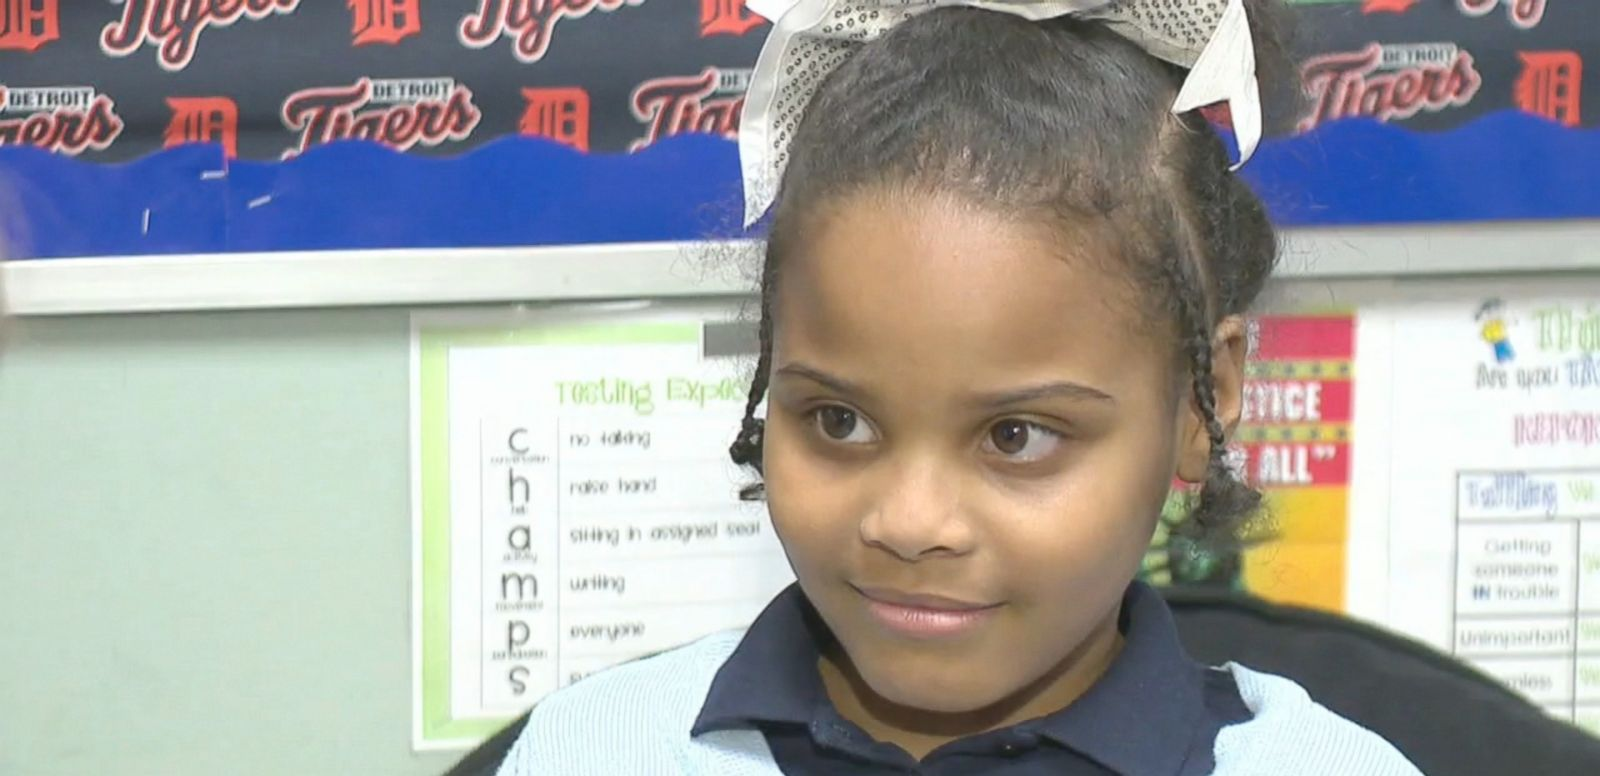 VIDEO: The 8-year-old girl who received a letter from President Obama after writing to him about Flint, Michigan, will get a chance to meet the commander-in-chief today.